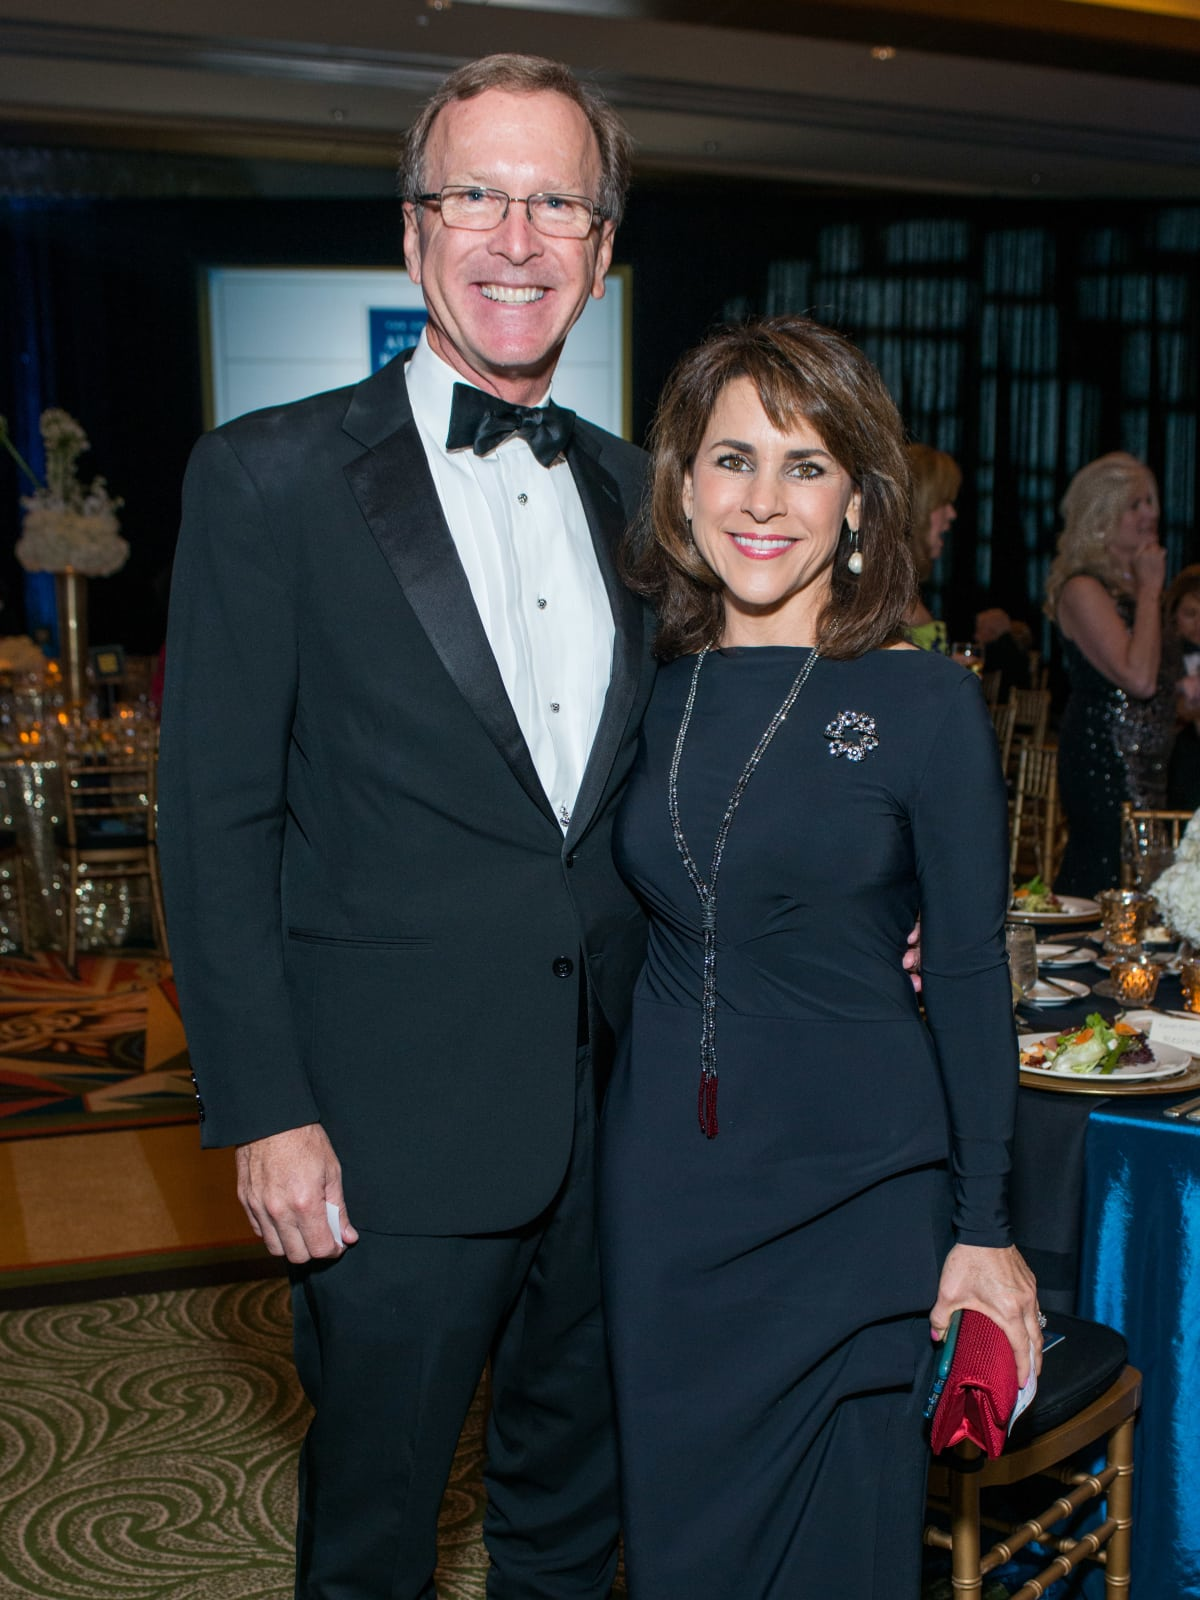 News, Shelby, UNICEF gala, Nov. 2015, Neil Bush, Maria Bush